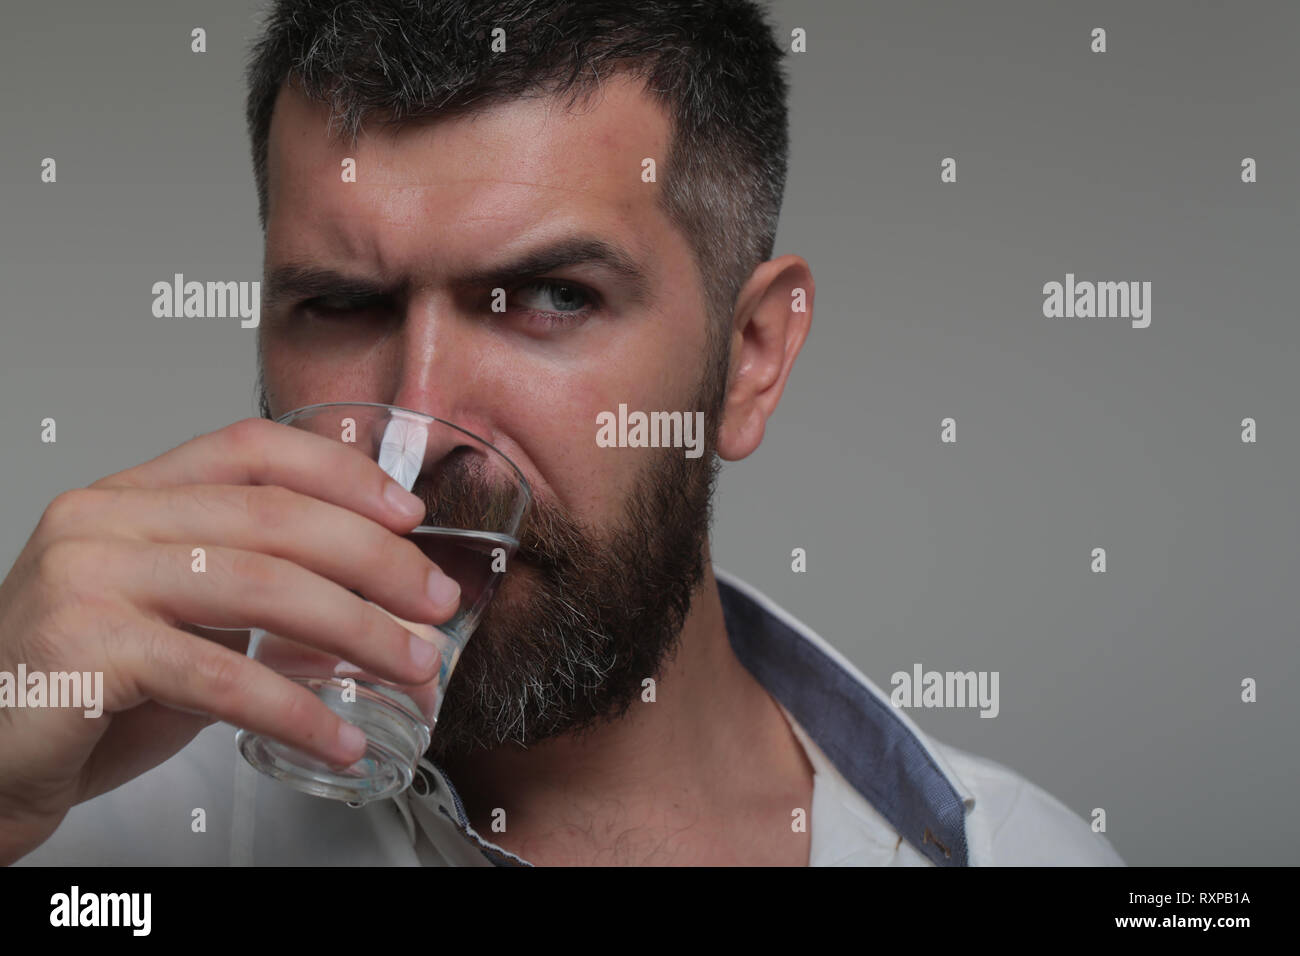 Bearded man drink water - Stock Image